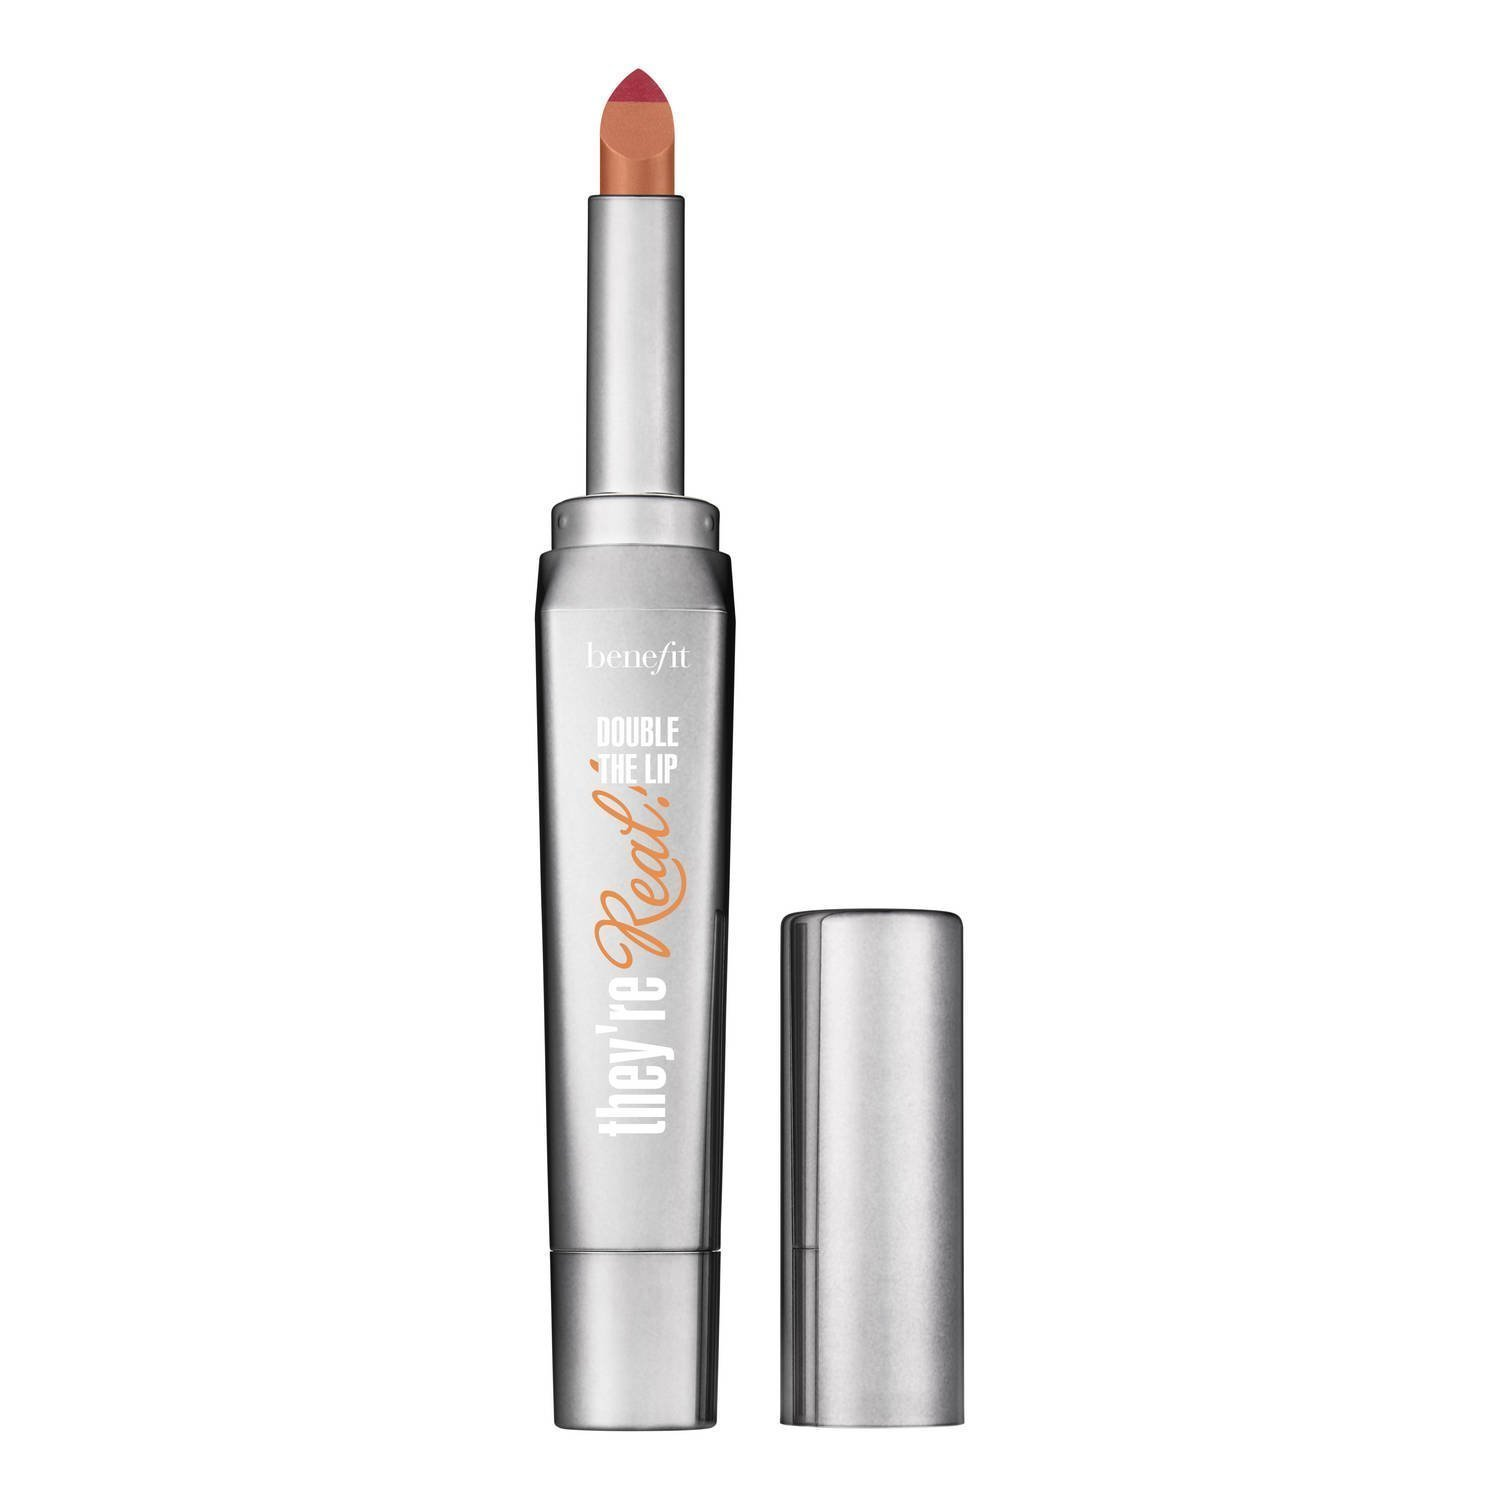 Benefit Cosmetics They're Real! Double The Lip Lipstick & Liner in One (Nude Scandal - pinky nude) 0.05 oz